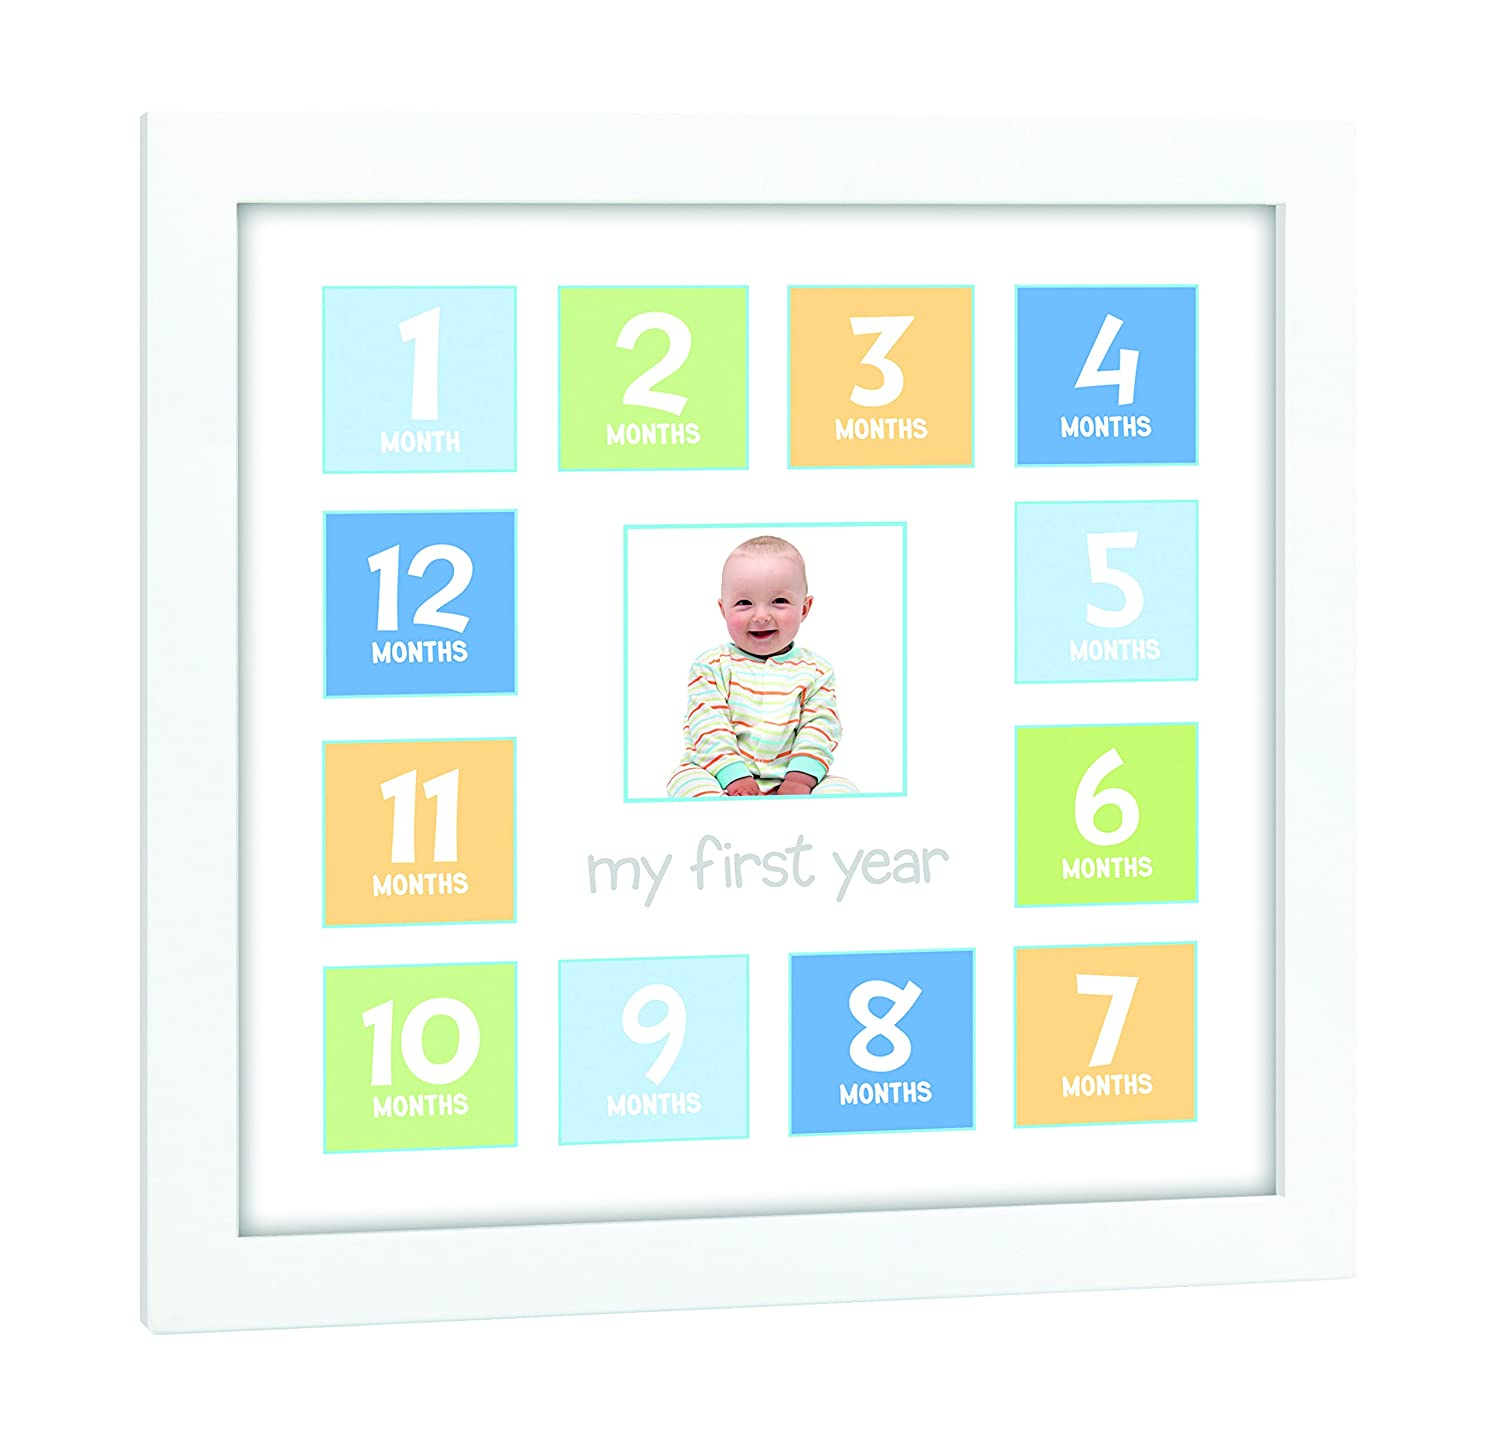 amazoncom tiny ideas babys first year keepsake picture photo frame bluegreenyellow baby - My First Year Photo Frame